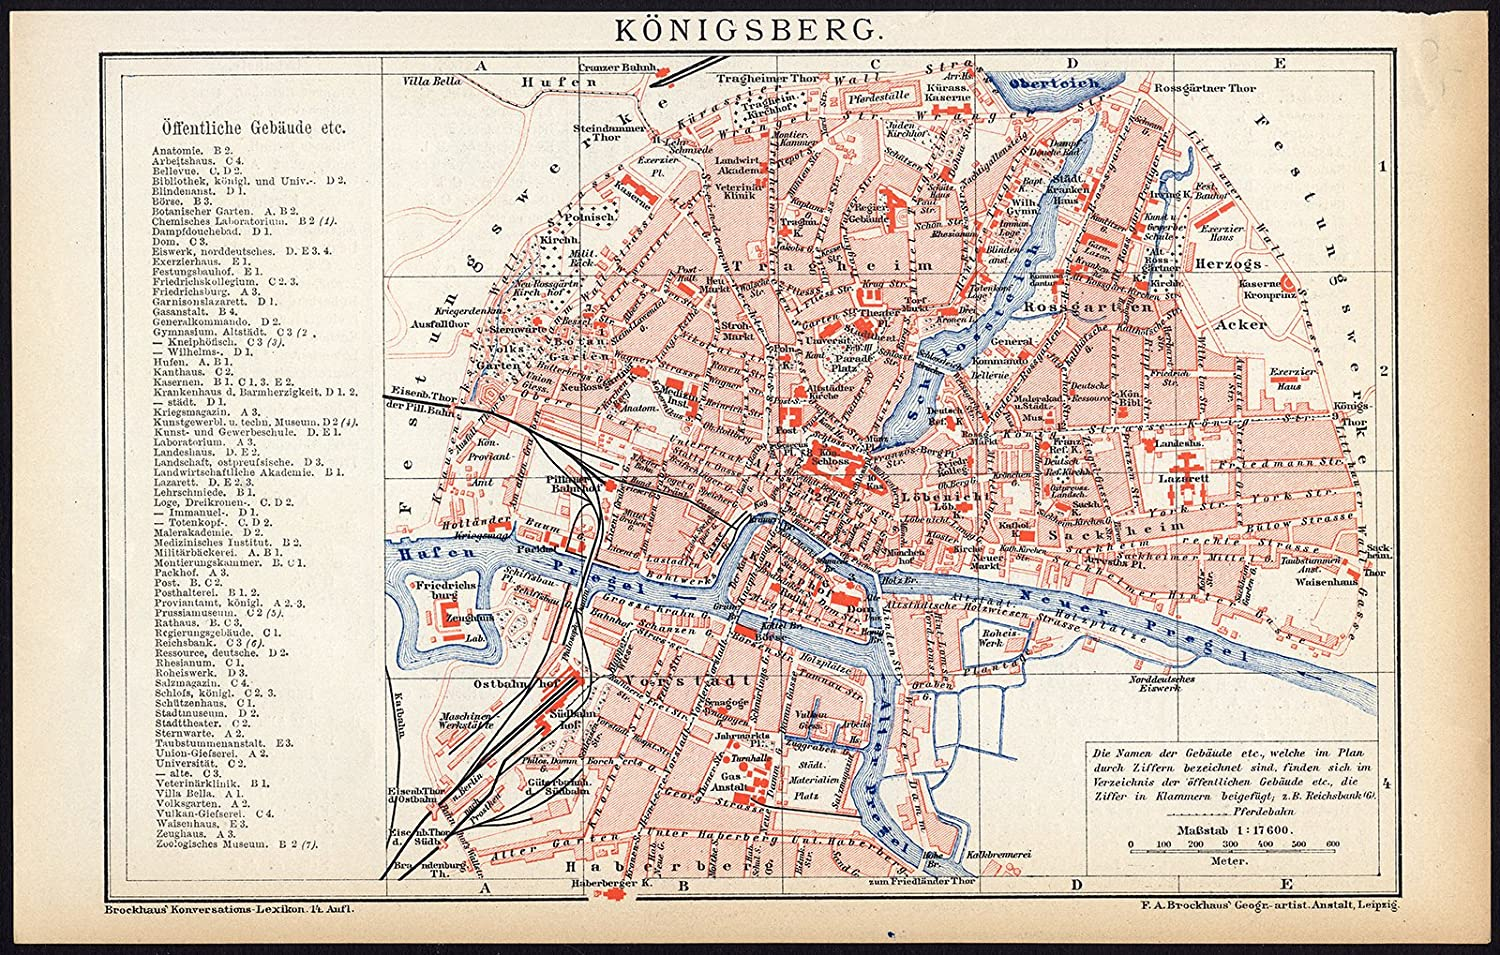 Amazon.com: Antique Map-KONIGSBERG-KALININGRAD-RUSSIA-Brockhaus-1893 on russia and the former soviet union map, russia moscow on map, russia hungary on map, tatarstan russia map, russia lake onega on map, novgorod russia map, russia political map, russia and germany, russia lake baikal on map, russia and usa map, city of kaliningrad russia map, european separatist movements map, germany map, kaliningrad oblast map, russia st. petersburg on map,